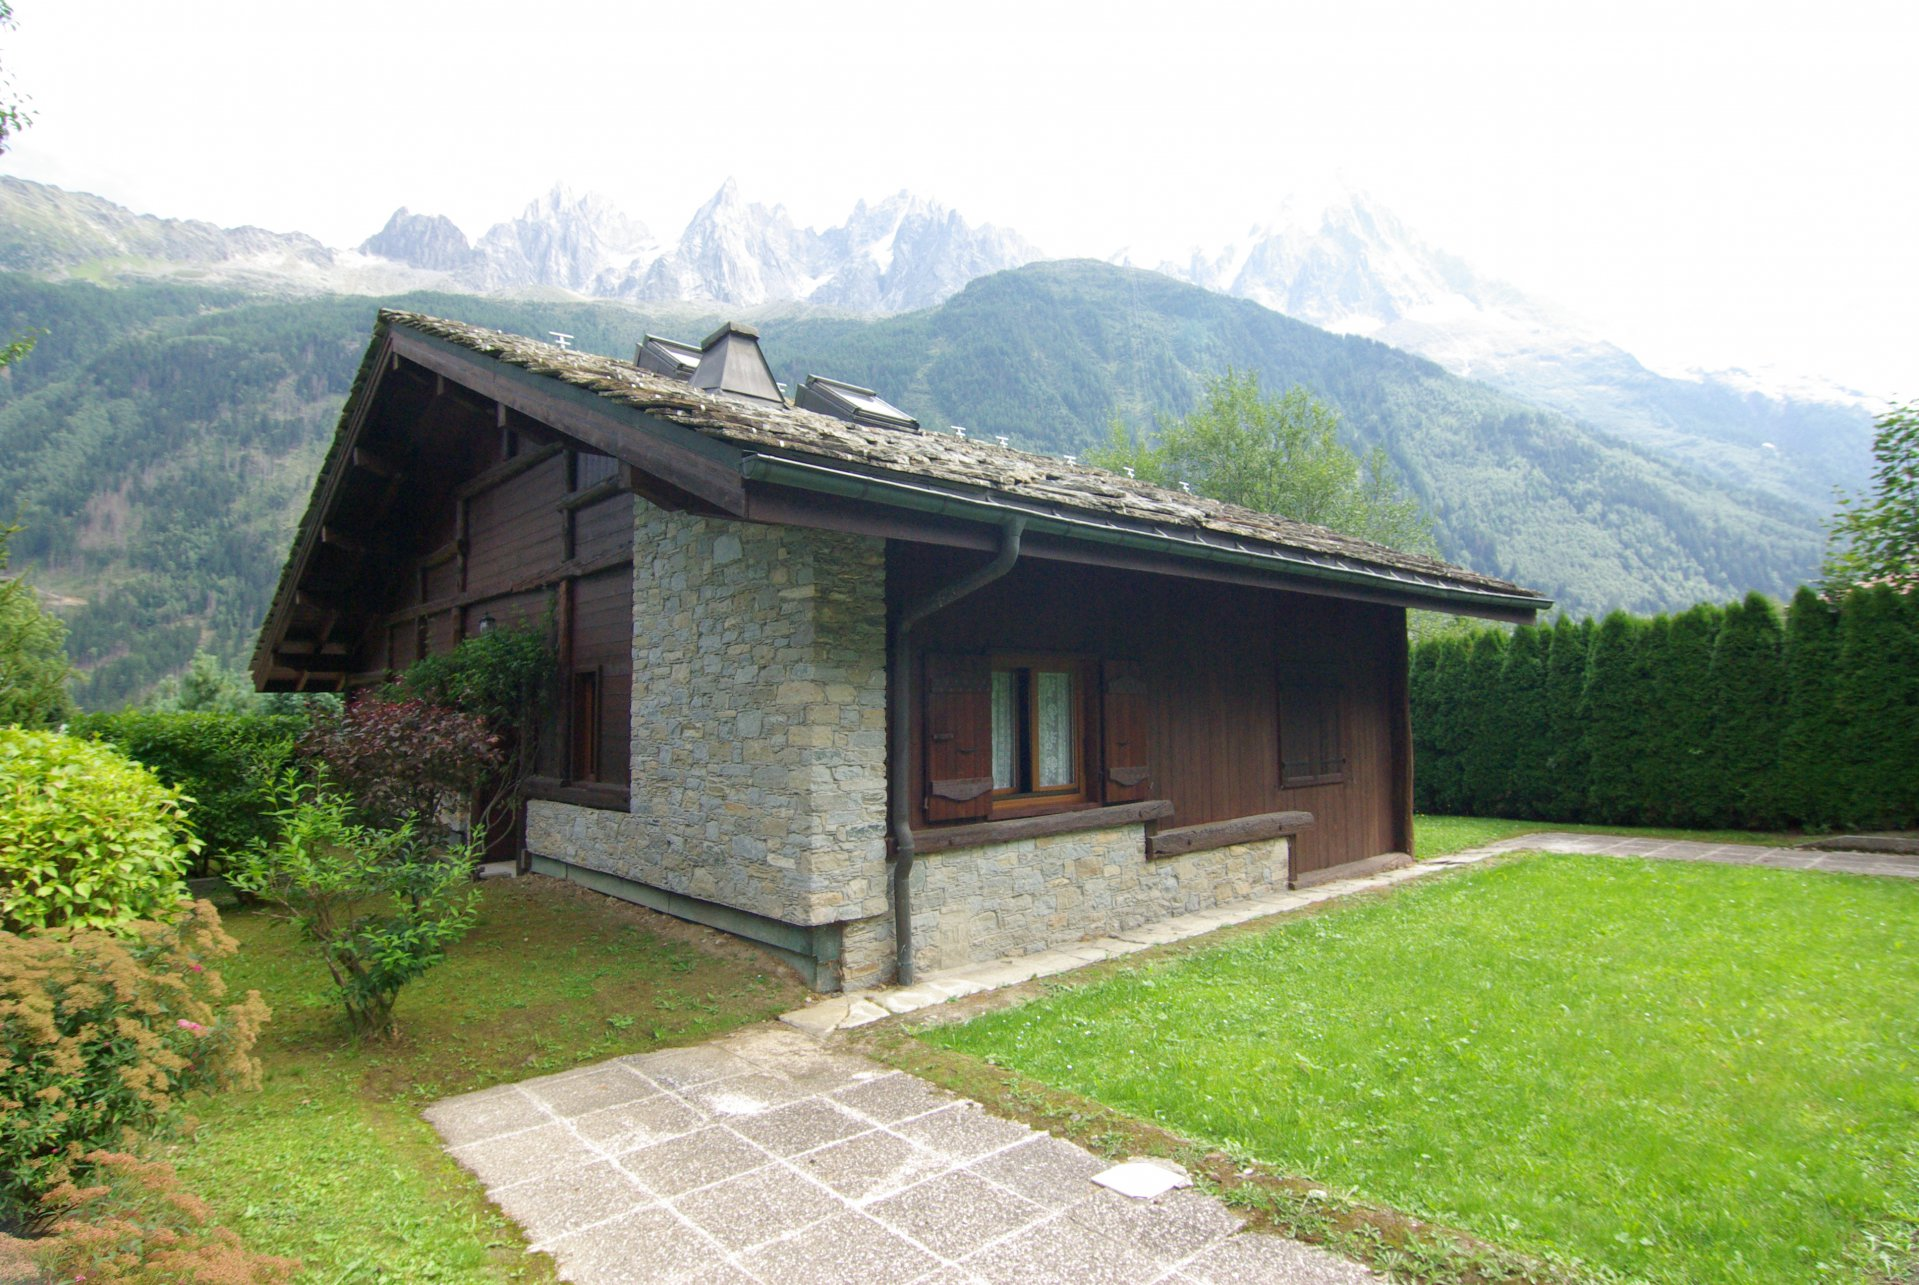 Exterior view of the house facing Mont Blanc